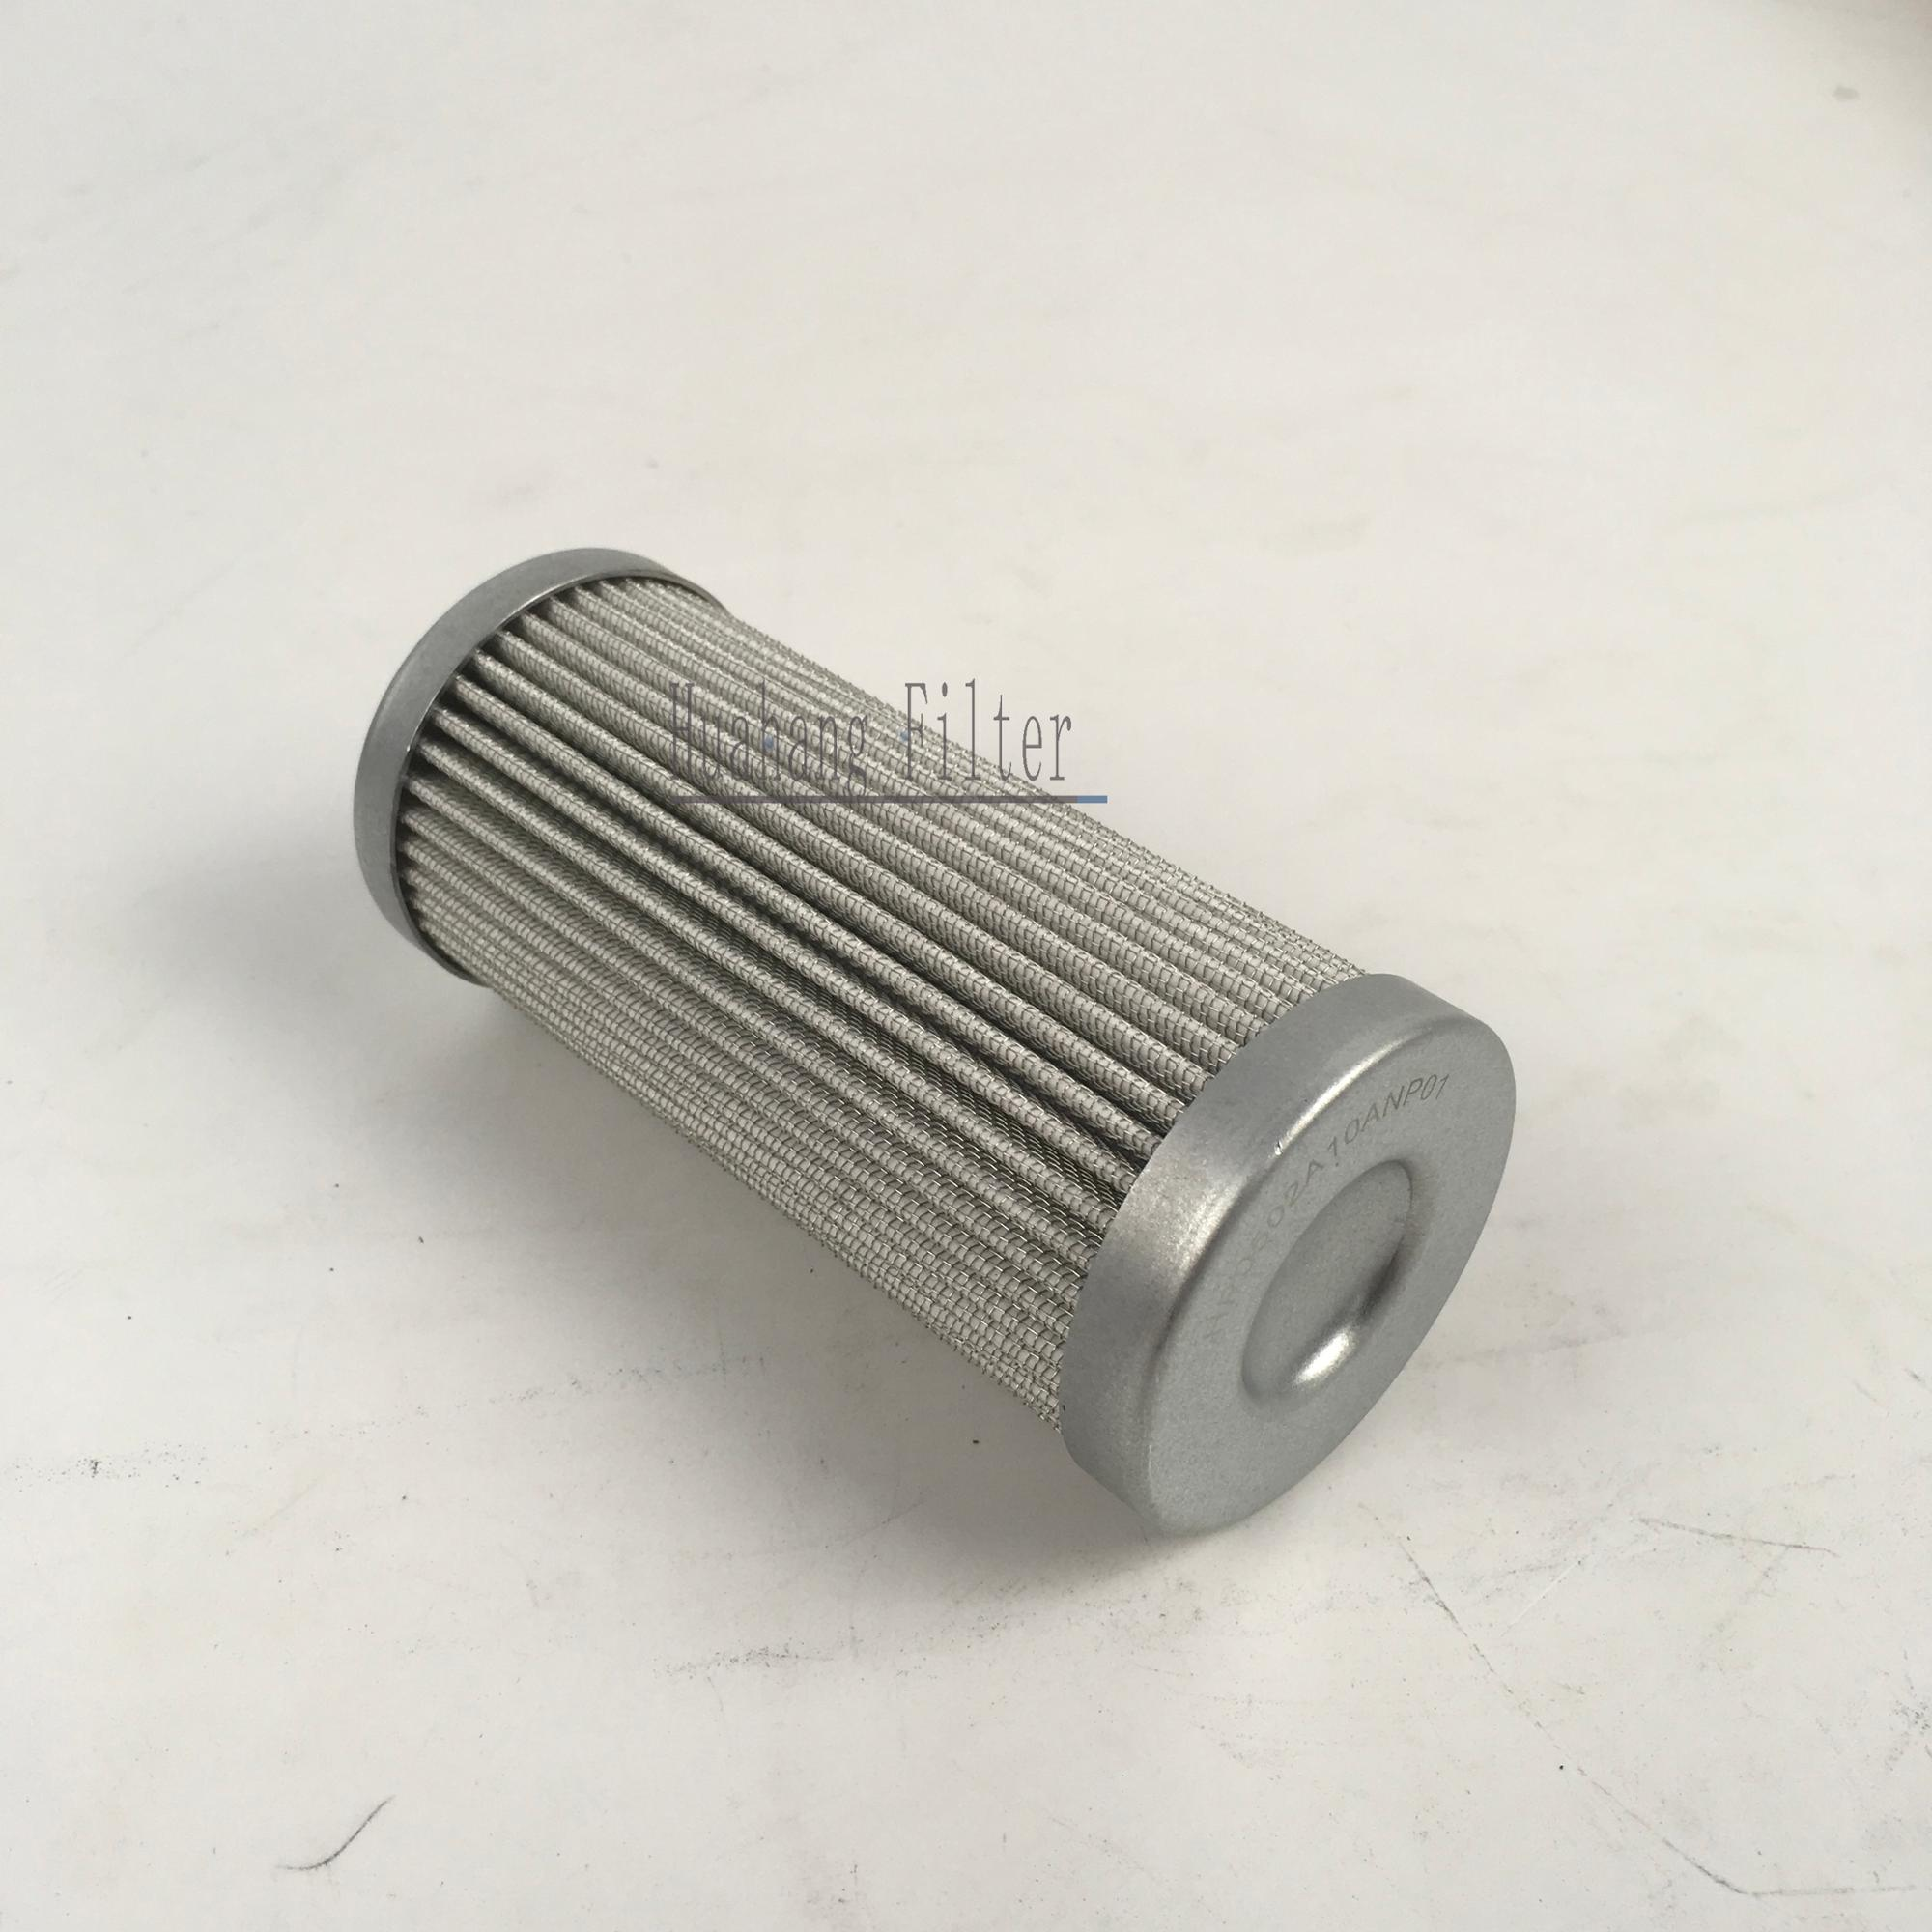 Replacement MP-Filter  Industrial Hydraulic Oil Filter Element HP0502A10ANP01Replacement MP-Filter  Industrial Hydraulic Oil Filter Element HP0502A10ANP01Replacement MP-Filter  Industrial Hydraulic Oil Filter Element HP0502A10ANP01Replacement MP-Filter  Industrial Hydraulic Oil Filter Element HP0502A10ANP01Replacement MP-Filter  Industrial Hydraulic Oil Filter Element HP0502A10ANP01